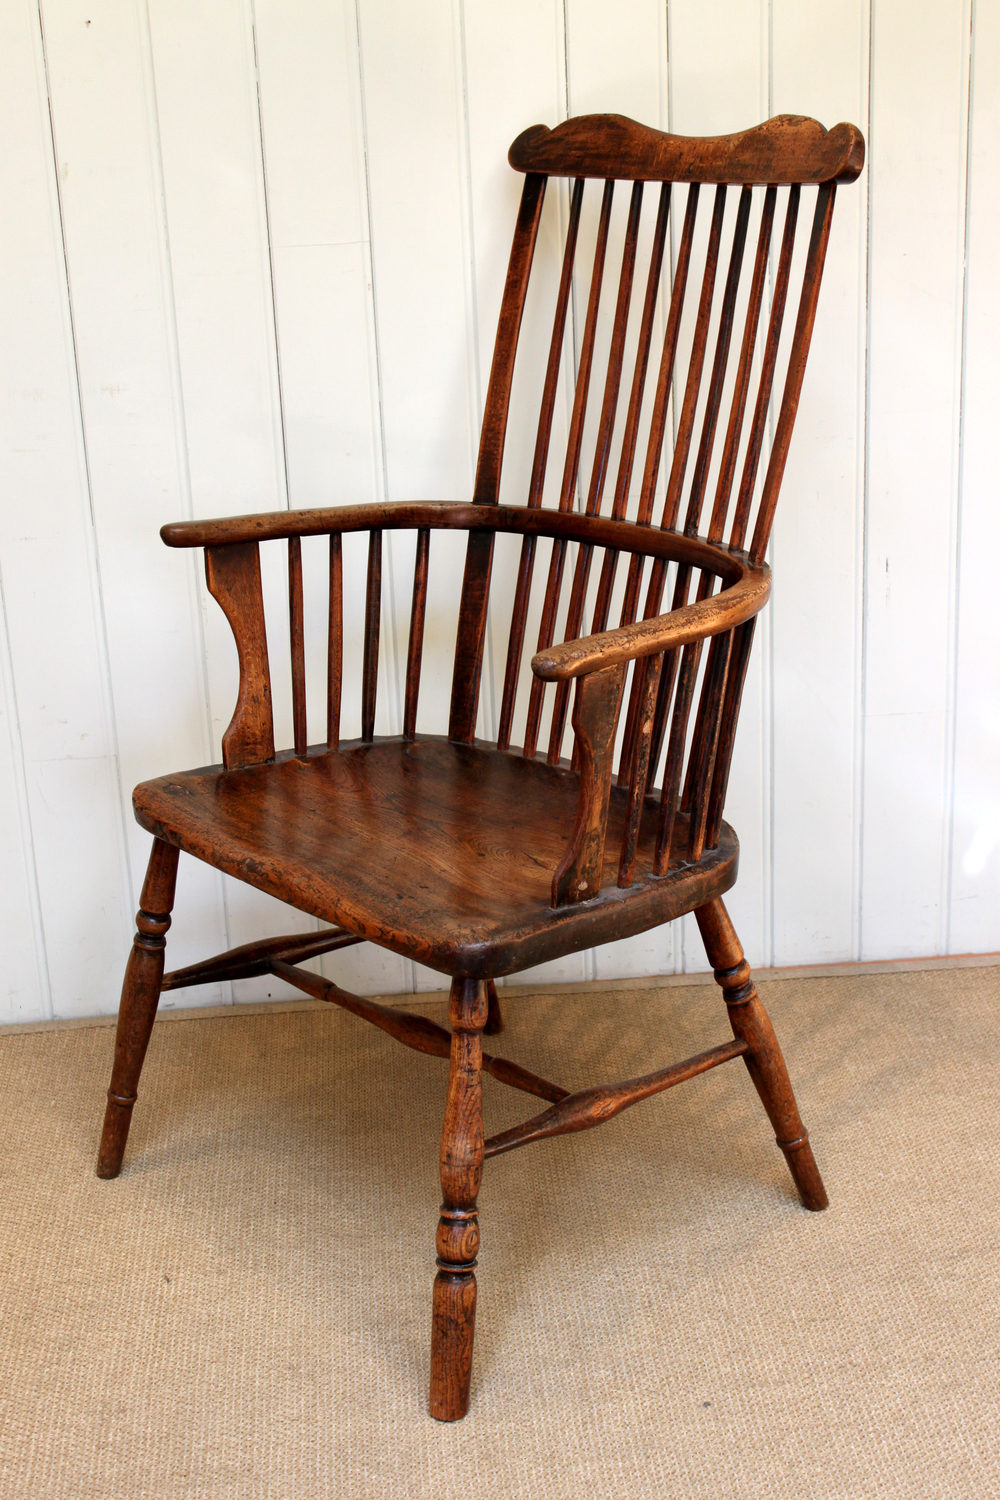 Mid 18th Century Comb Back Windsor Chair - Antiques Atlas